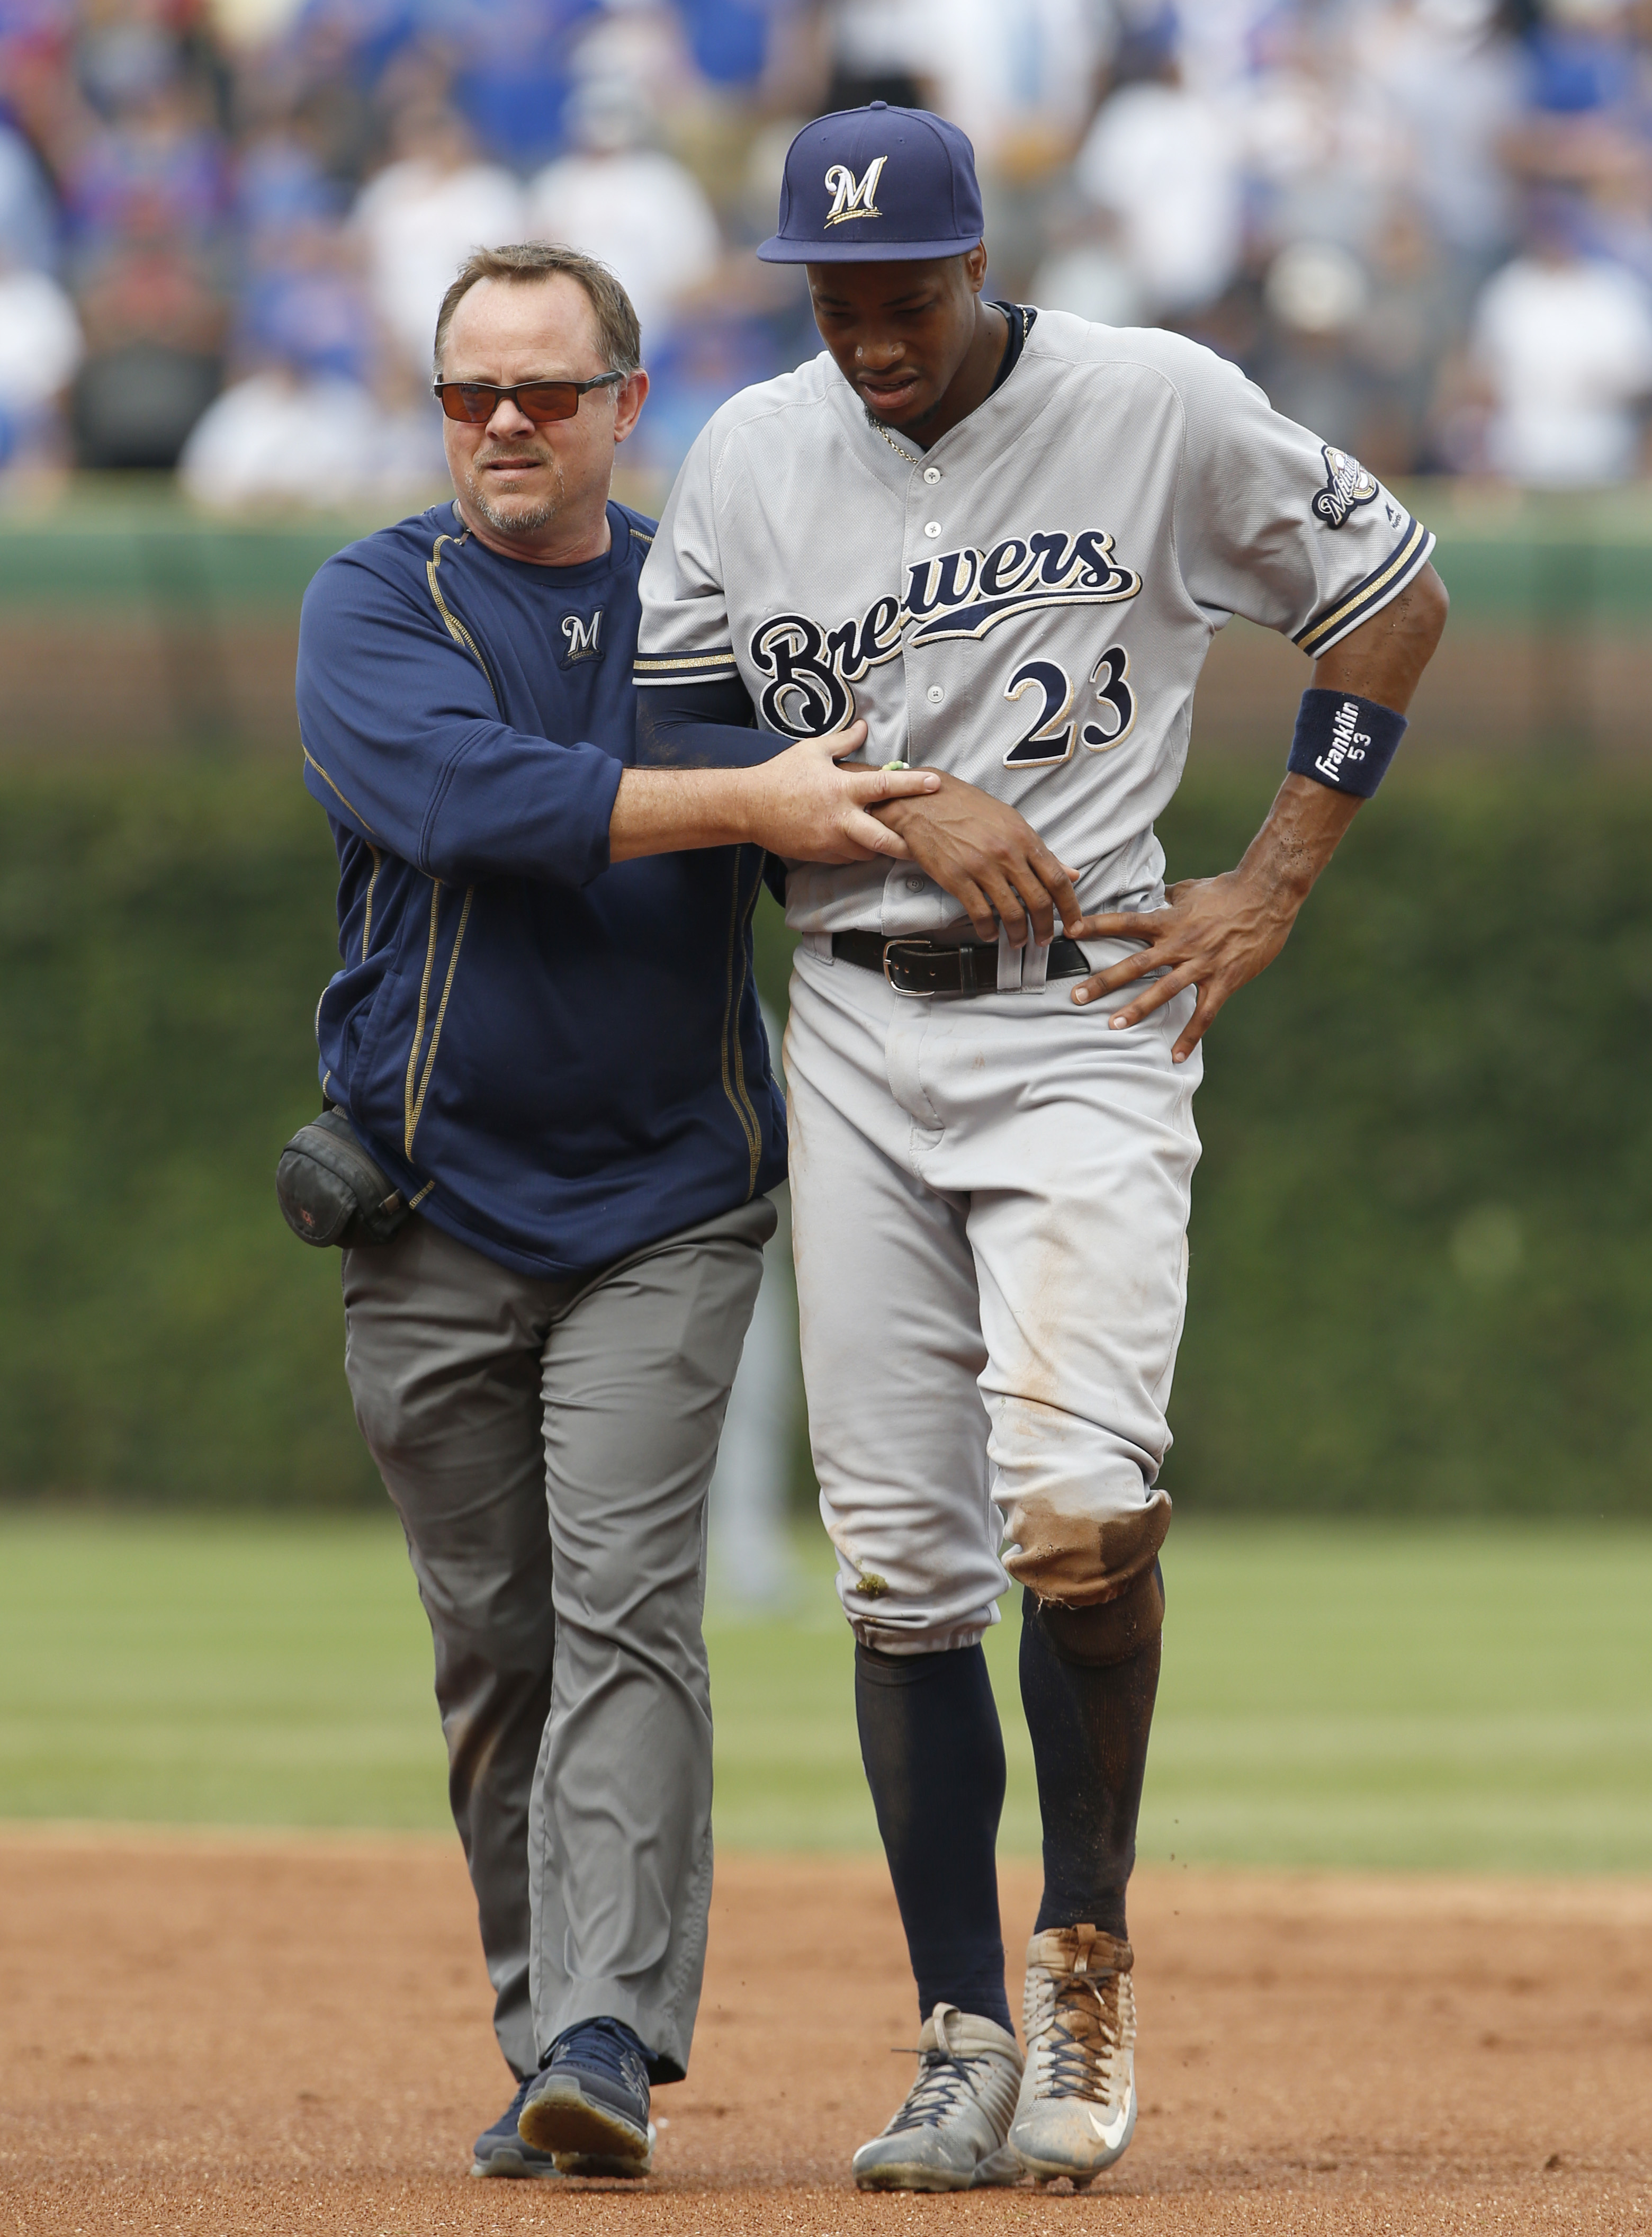 Milwaukee Brewers center fielder Keon Broxton, right, is helped off the field by the trainer after he crashed into the outfield wall during the third inning of a baseball game against the Chicago Cubs, Friday, Sept. 16, 2016, in Chicago. (AP Photo/Nam Y.